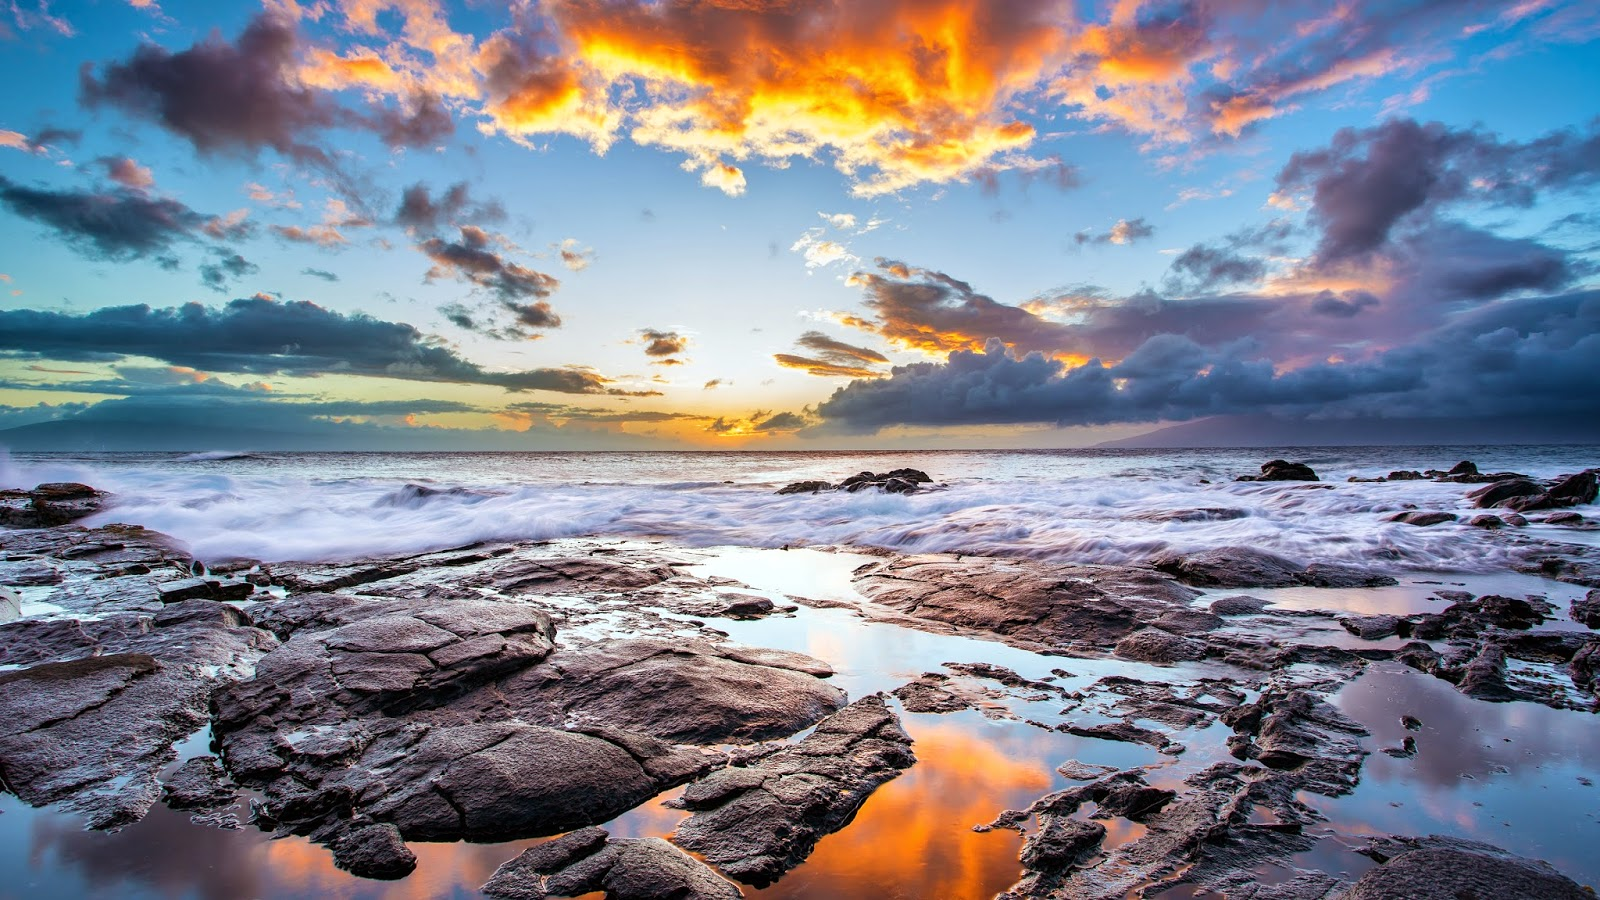 Sunset Maui Hawaiian Island HD desktop wallpaper High  - sunset maui hawaiian island wallpapers